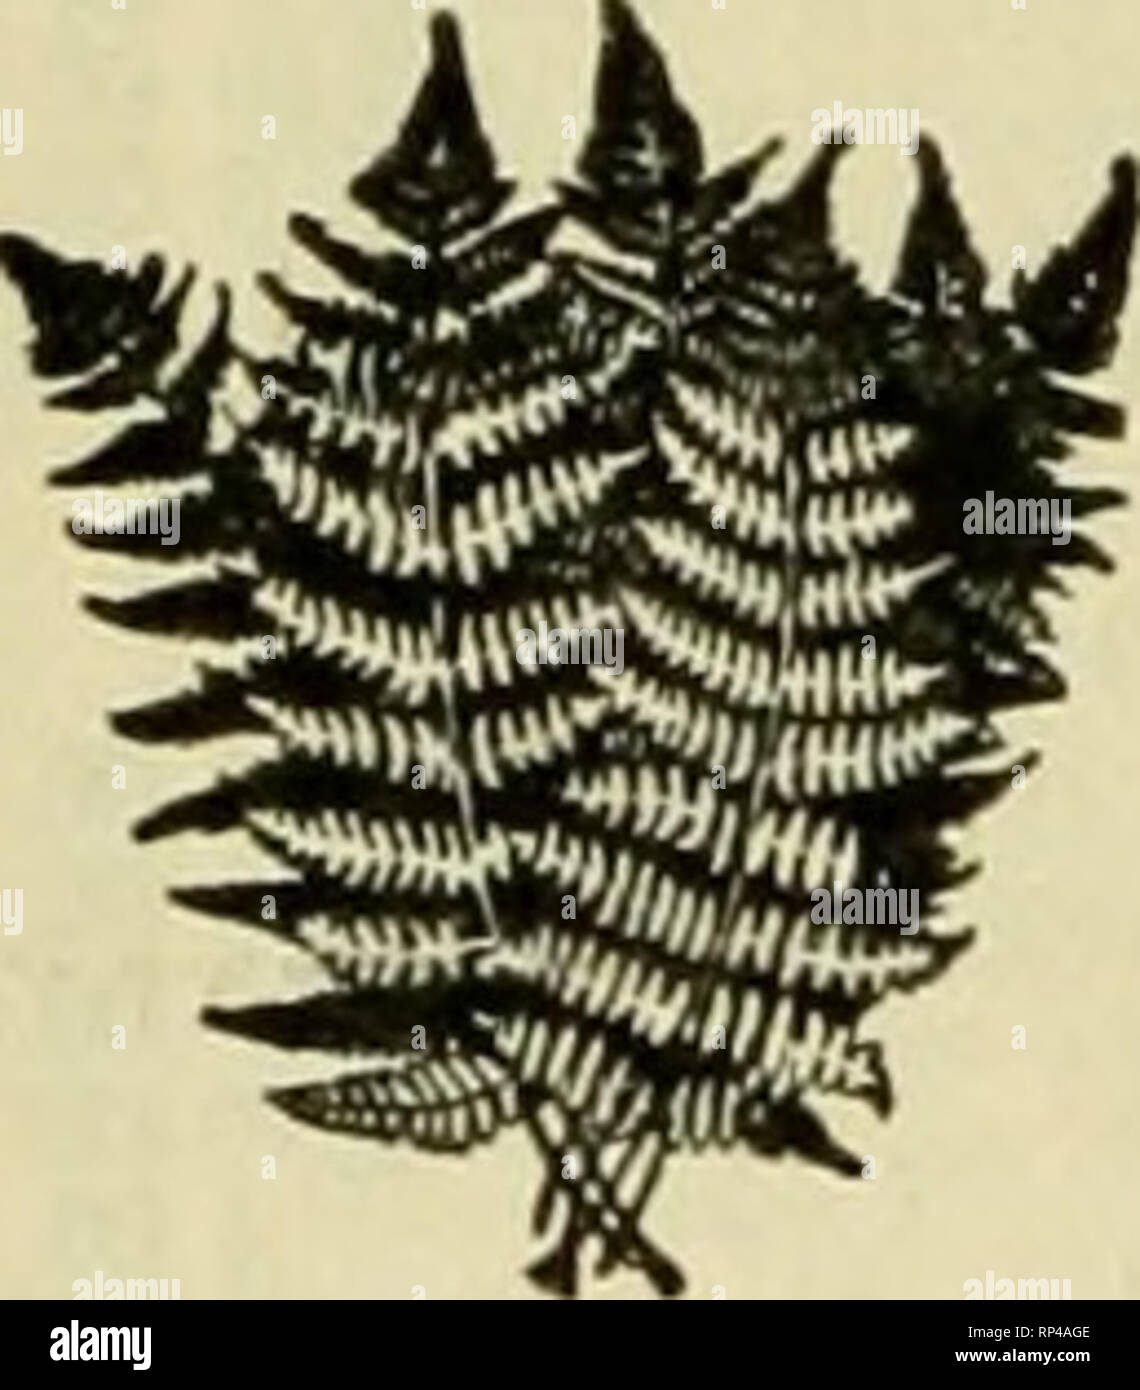 """. The American florist : a weekly journal for the trade. Floriculture; Florists. Qeorge Cotsonas& Co. Wholcsaleand Retail Dealers ID all kinds of Evergreens Fancy and Dag^ferf Ferns. Bronze and Green Galax. Holly. Leucotboe Sprays. Priocess Pine, Etc.. Delivered to all parts of United States and Canada 127 W. 28th St.. bet. 6tb & 7th Aves.. Uau/ Ynrlr Telephone 1202 Madison Square. ''*"""" ?*'*'* ^ in all kinds of ^^^^l '^^^ Evergreens ^^^ ^^H^^v Fancy Dag^f er ^^fl^^^^ft ^H^^v Ferns. Bronze and ^^M^^^^P ^^W Green Galax. Holly. ^I^^^V ^^ Leucotboe Sprays. / ^^^^ """"* Prioress Pine - Stock Image"""